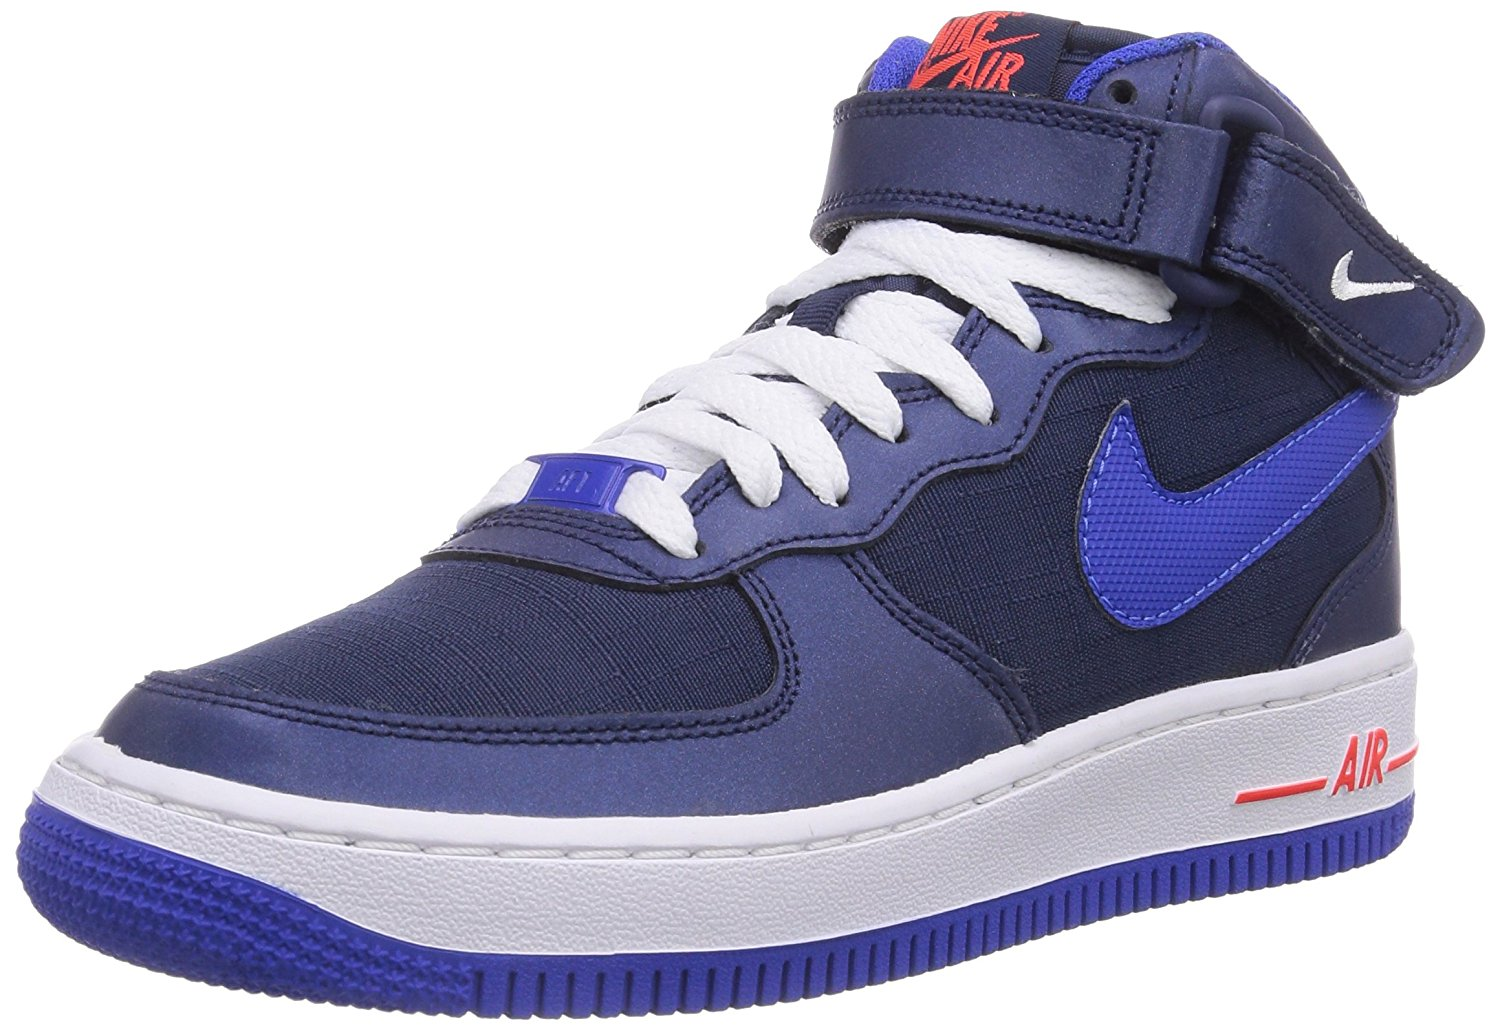 check out 2fcba 99dd6 NIKE YOUTH AIR FORCE 1 MID GS MIDNIGHT NAVY LYON BLUE WHITE CRIMSON 314195  412